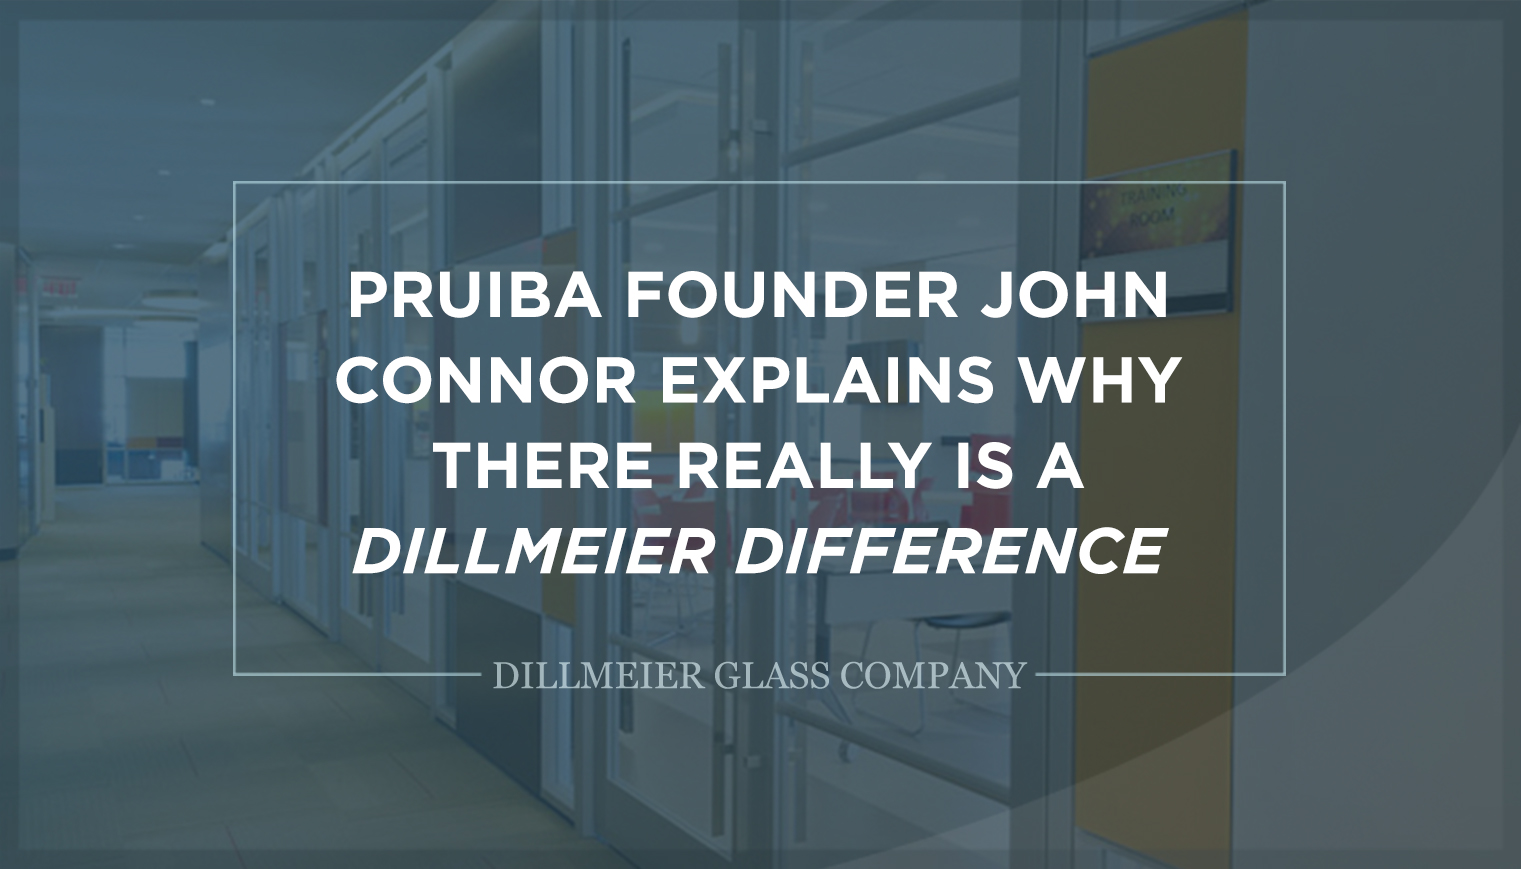 Pruiba Founder John Connor Explains Why There Really Is a Dillmeier Difference